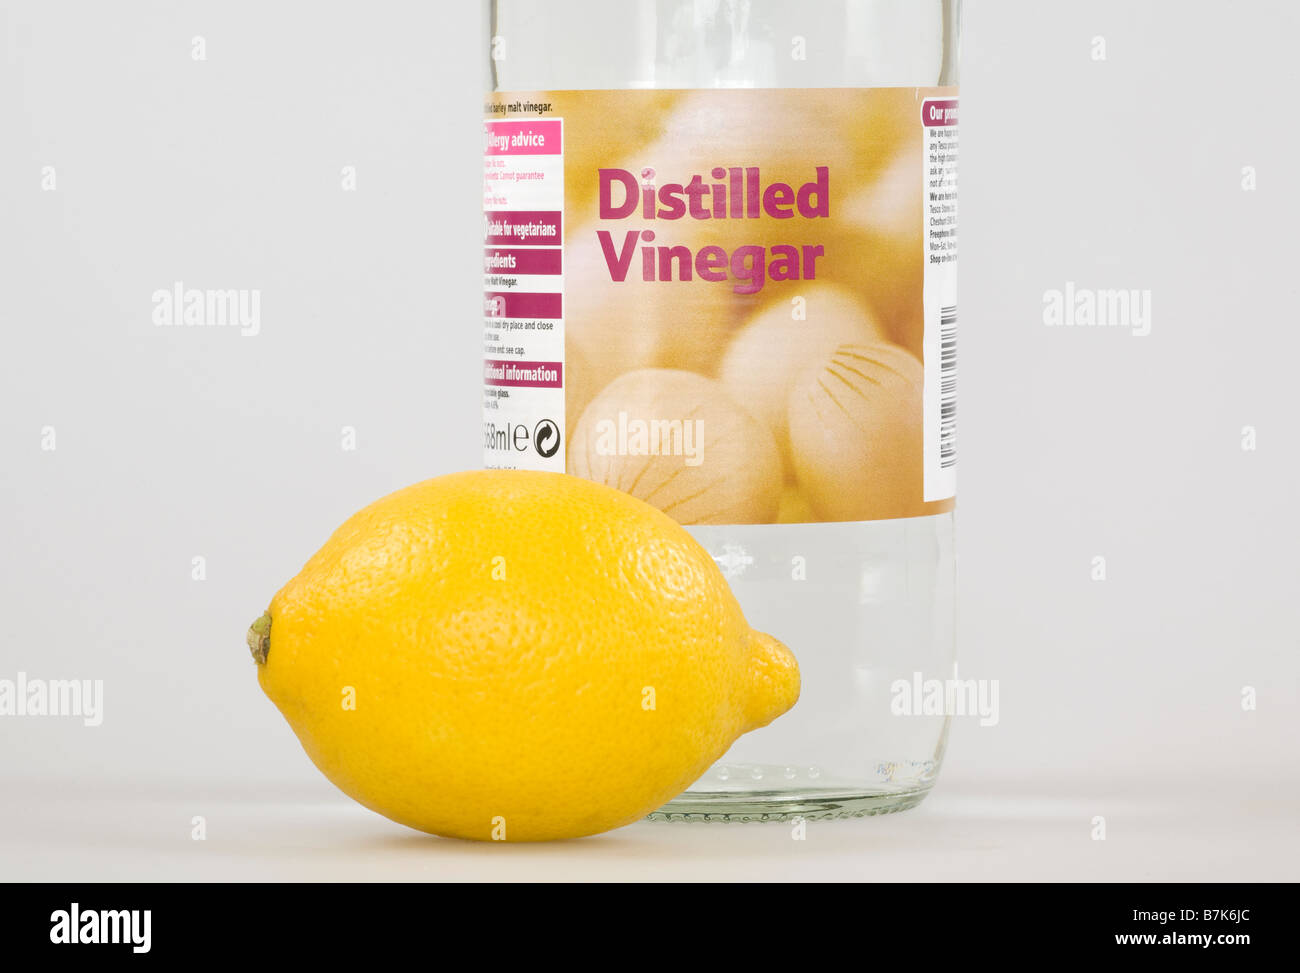 Vinegar and lemon - Stock Image